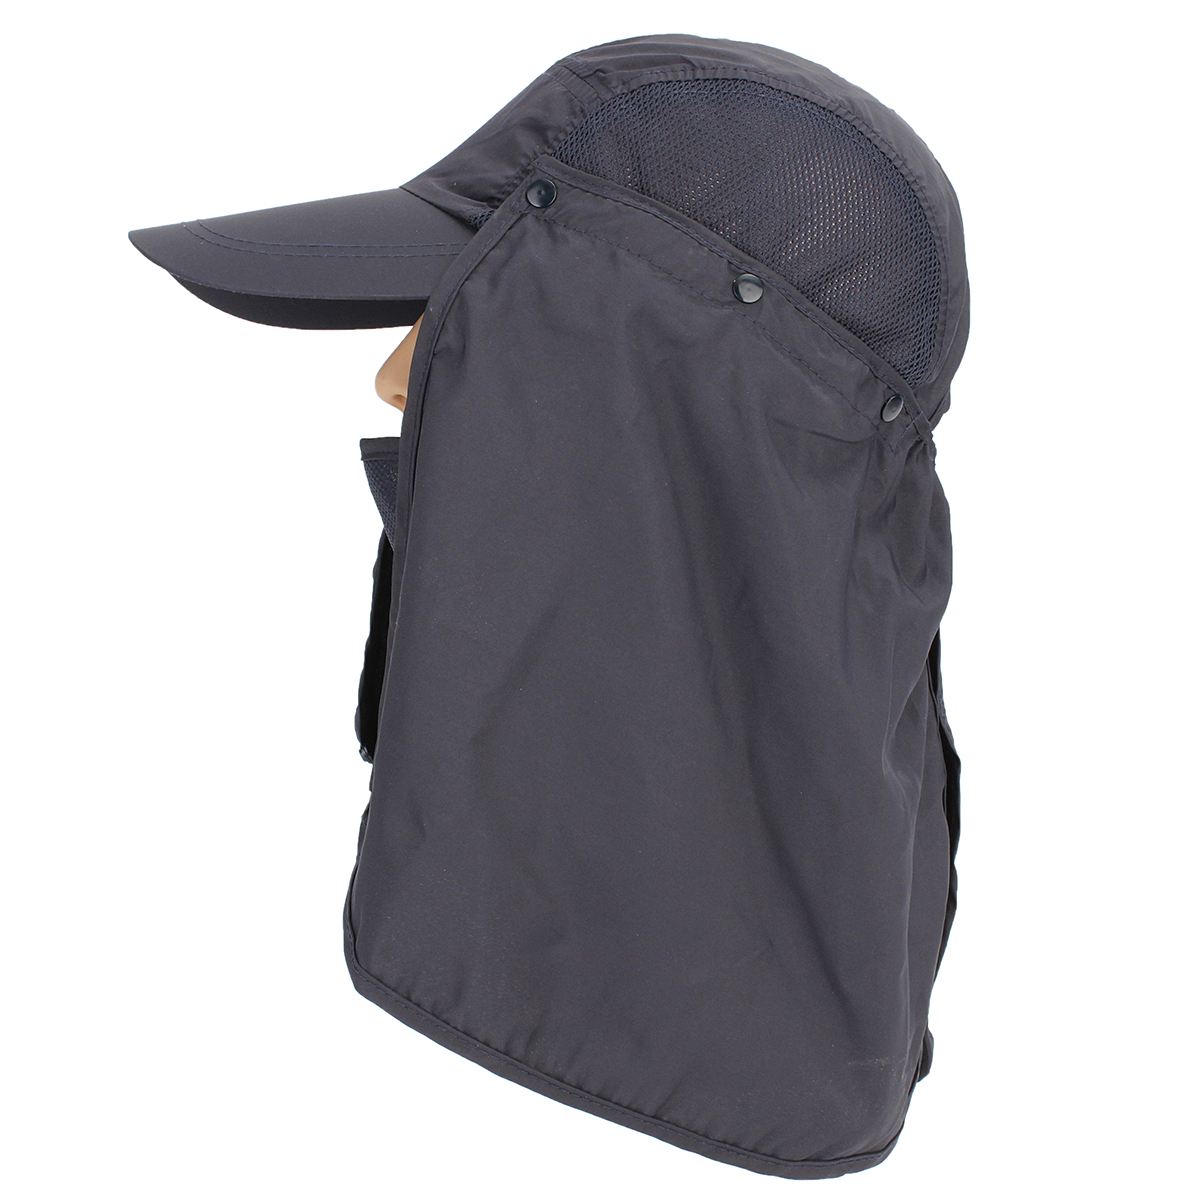 Unisex fishing hat cap face protector neck cover flap sun for Fishing neck cover